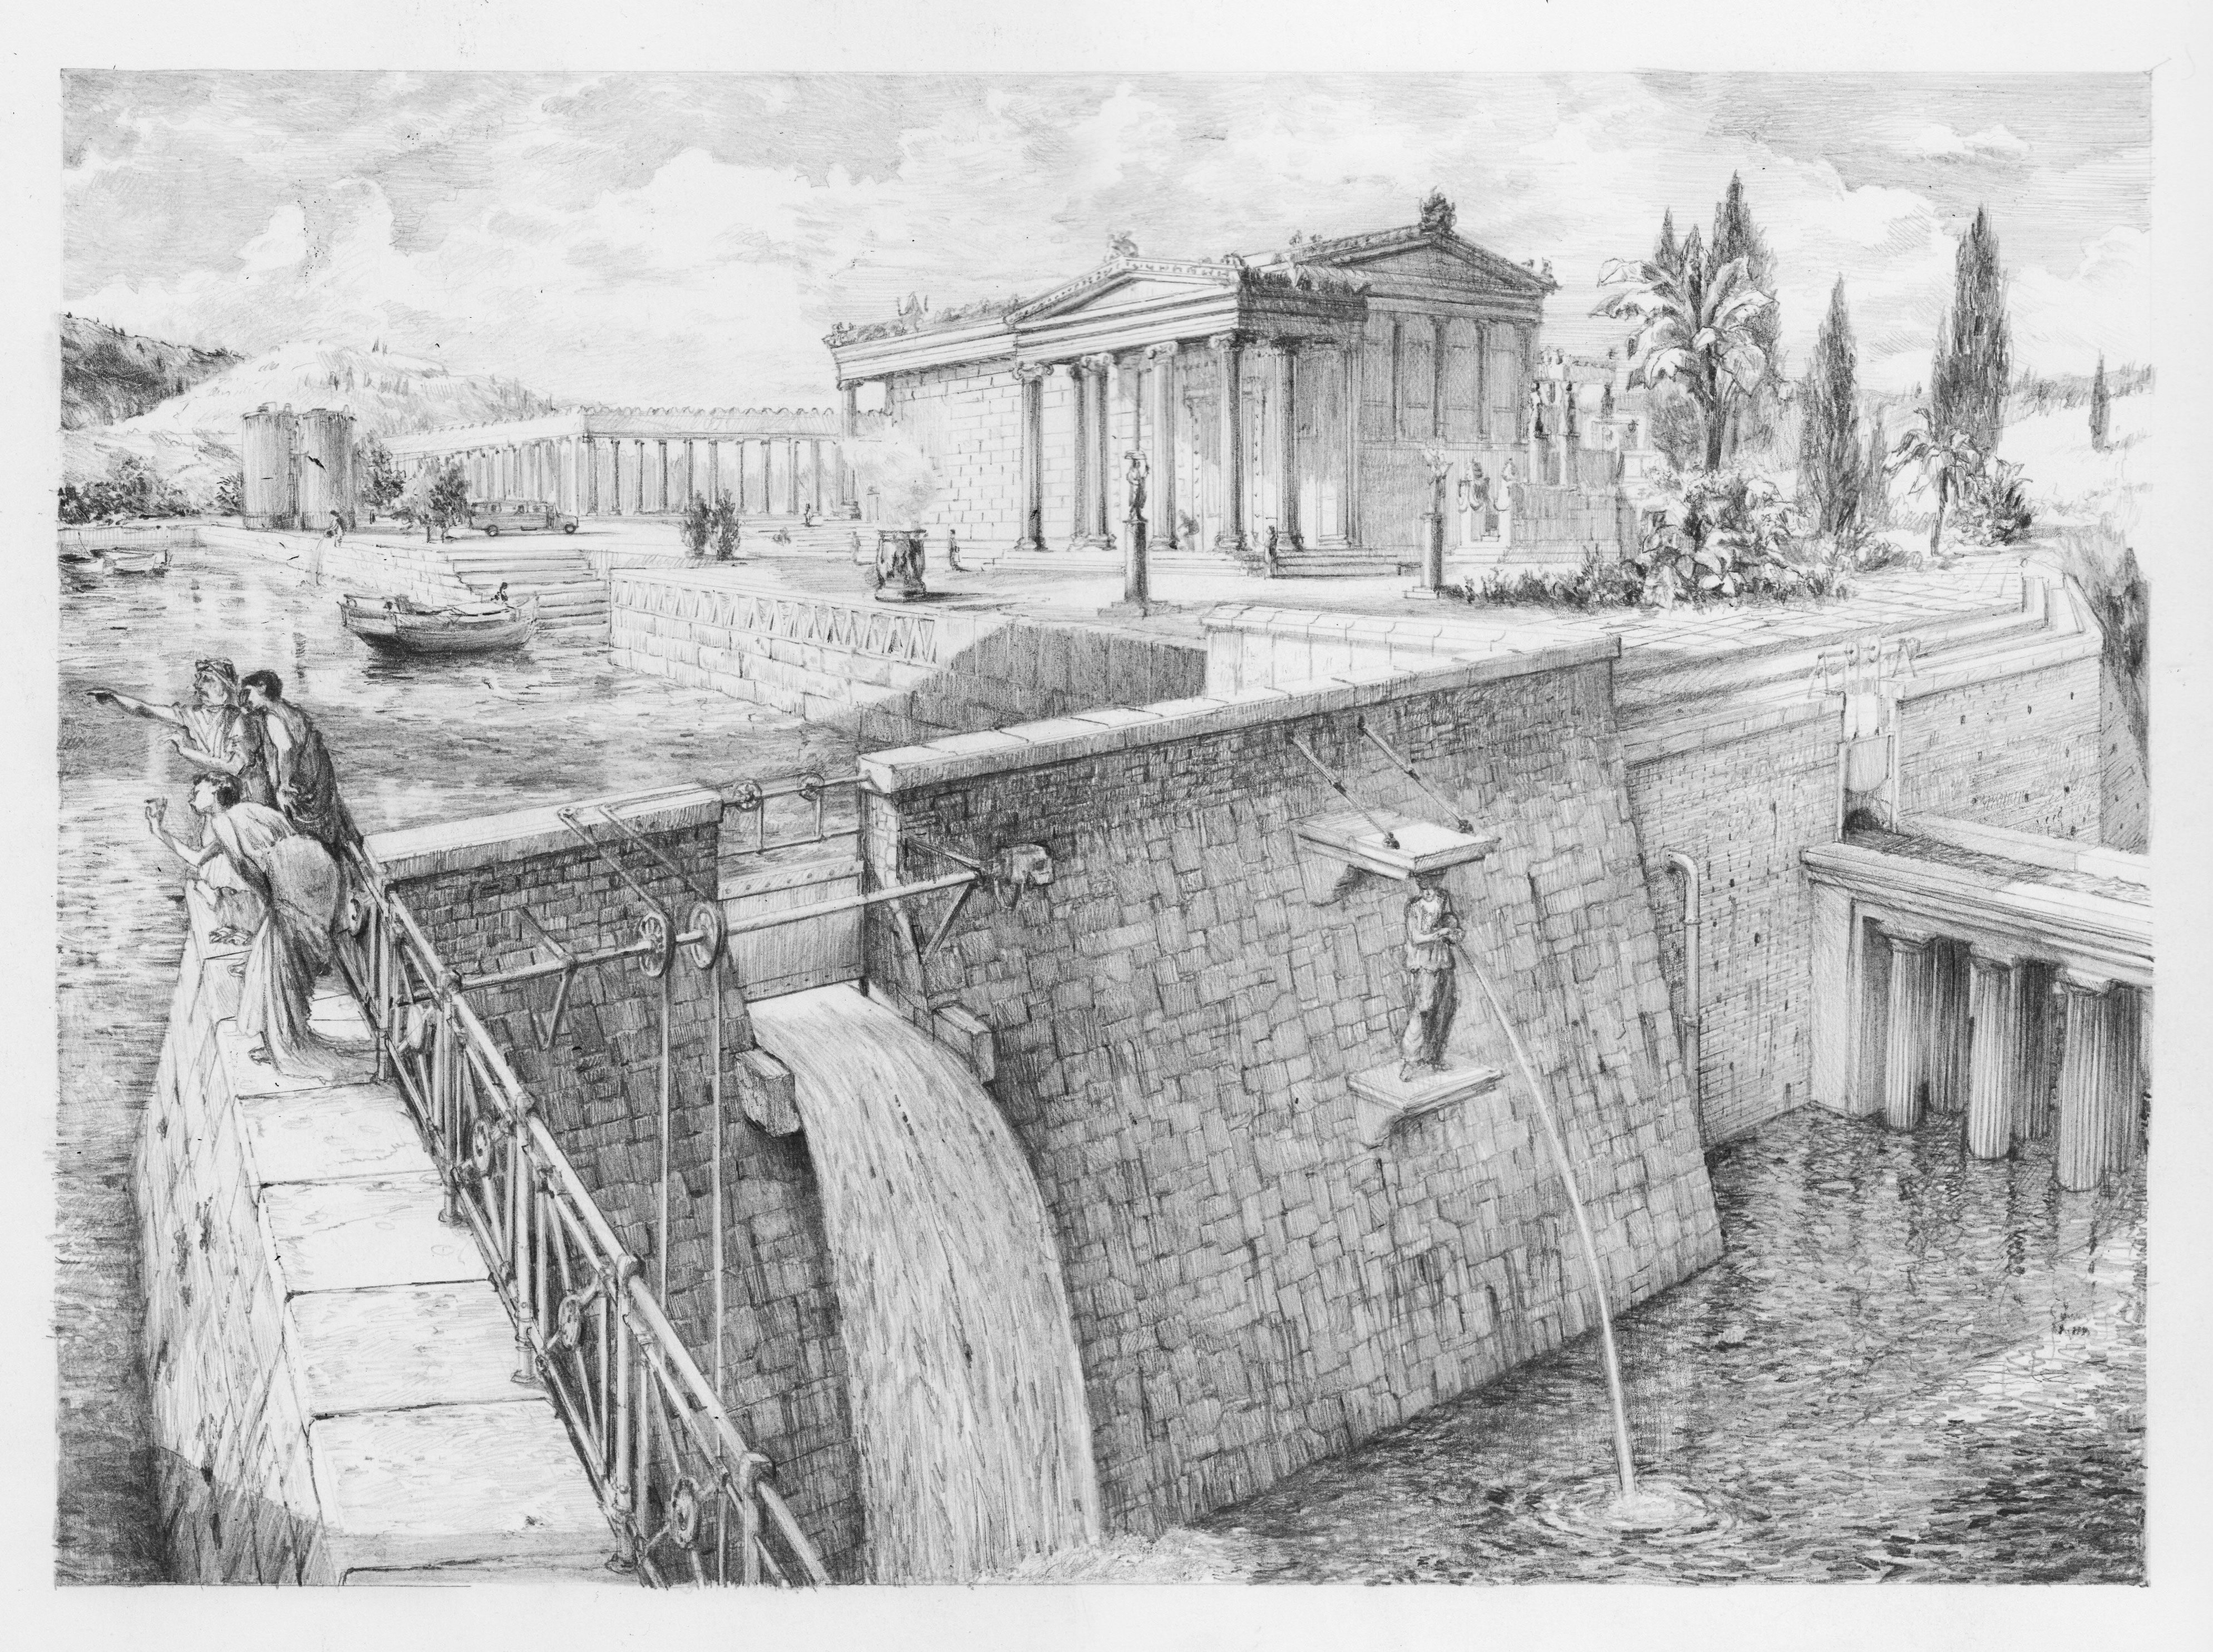 KROMA/Ioannis Savvidis, Hacking Truth About scapes series, Acropolis Water Reservoir, Fixed graphite on Hahnemühle paper, 22x31,5cm, 2017